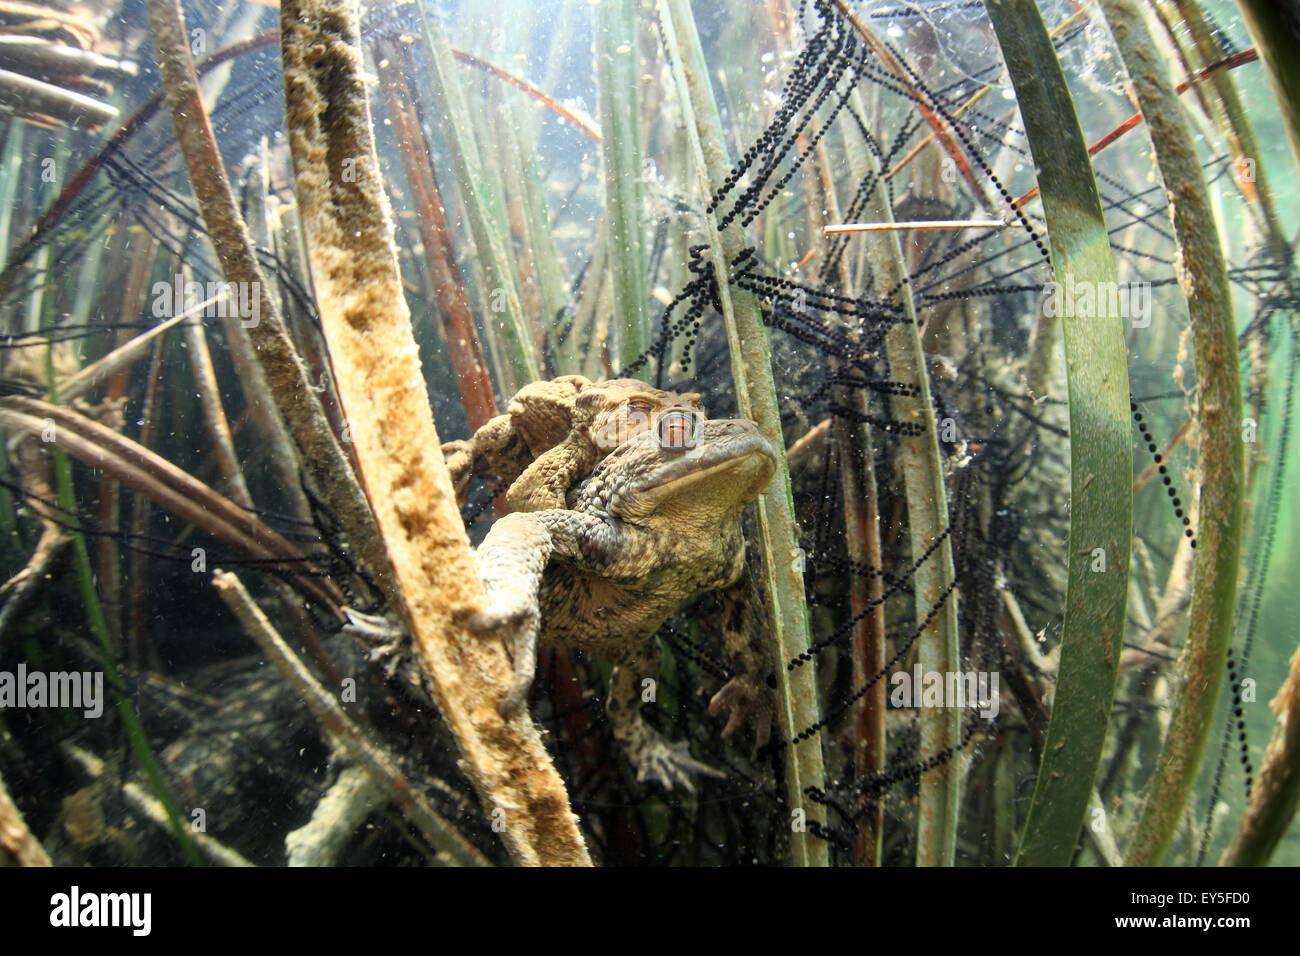 Common toad mating in a lake - France - Stock Image